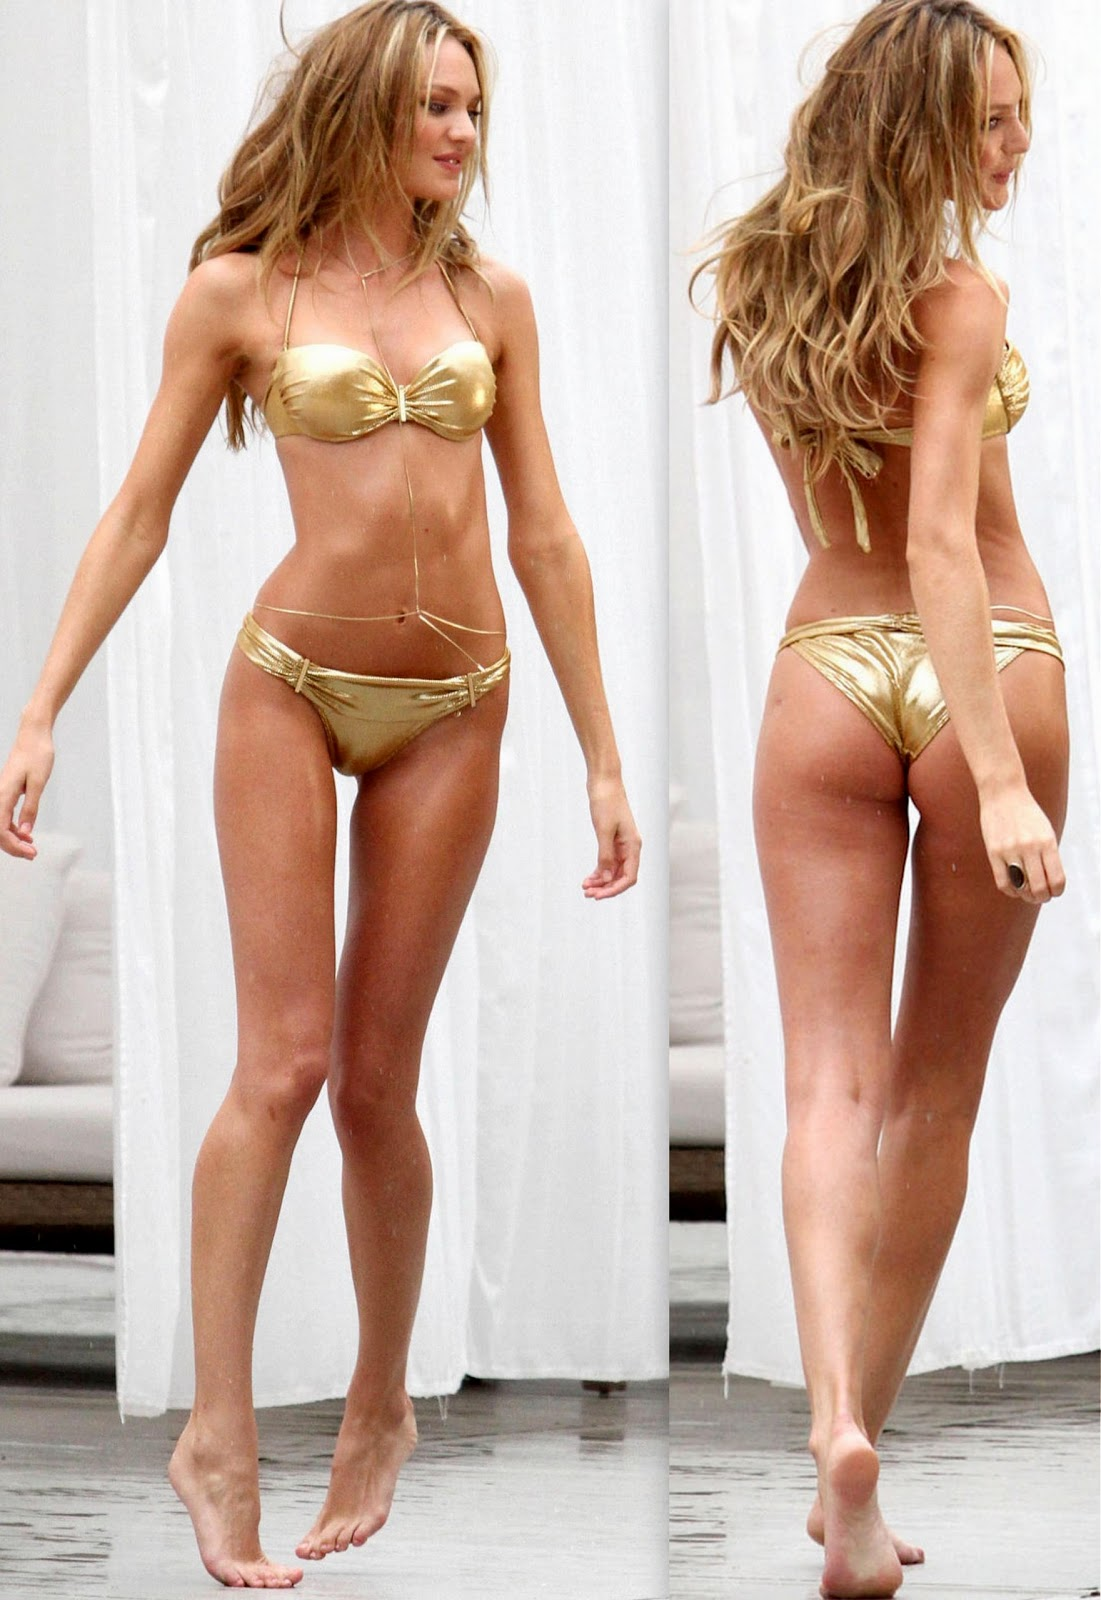 Models Inspiration Candice Swanepoel Gold Bikini Sep